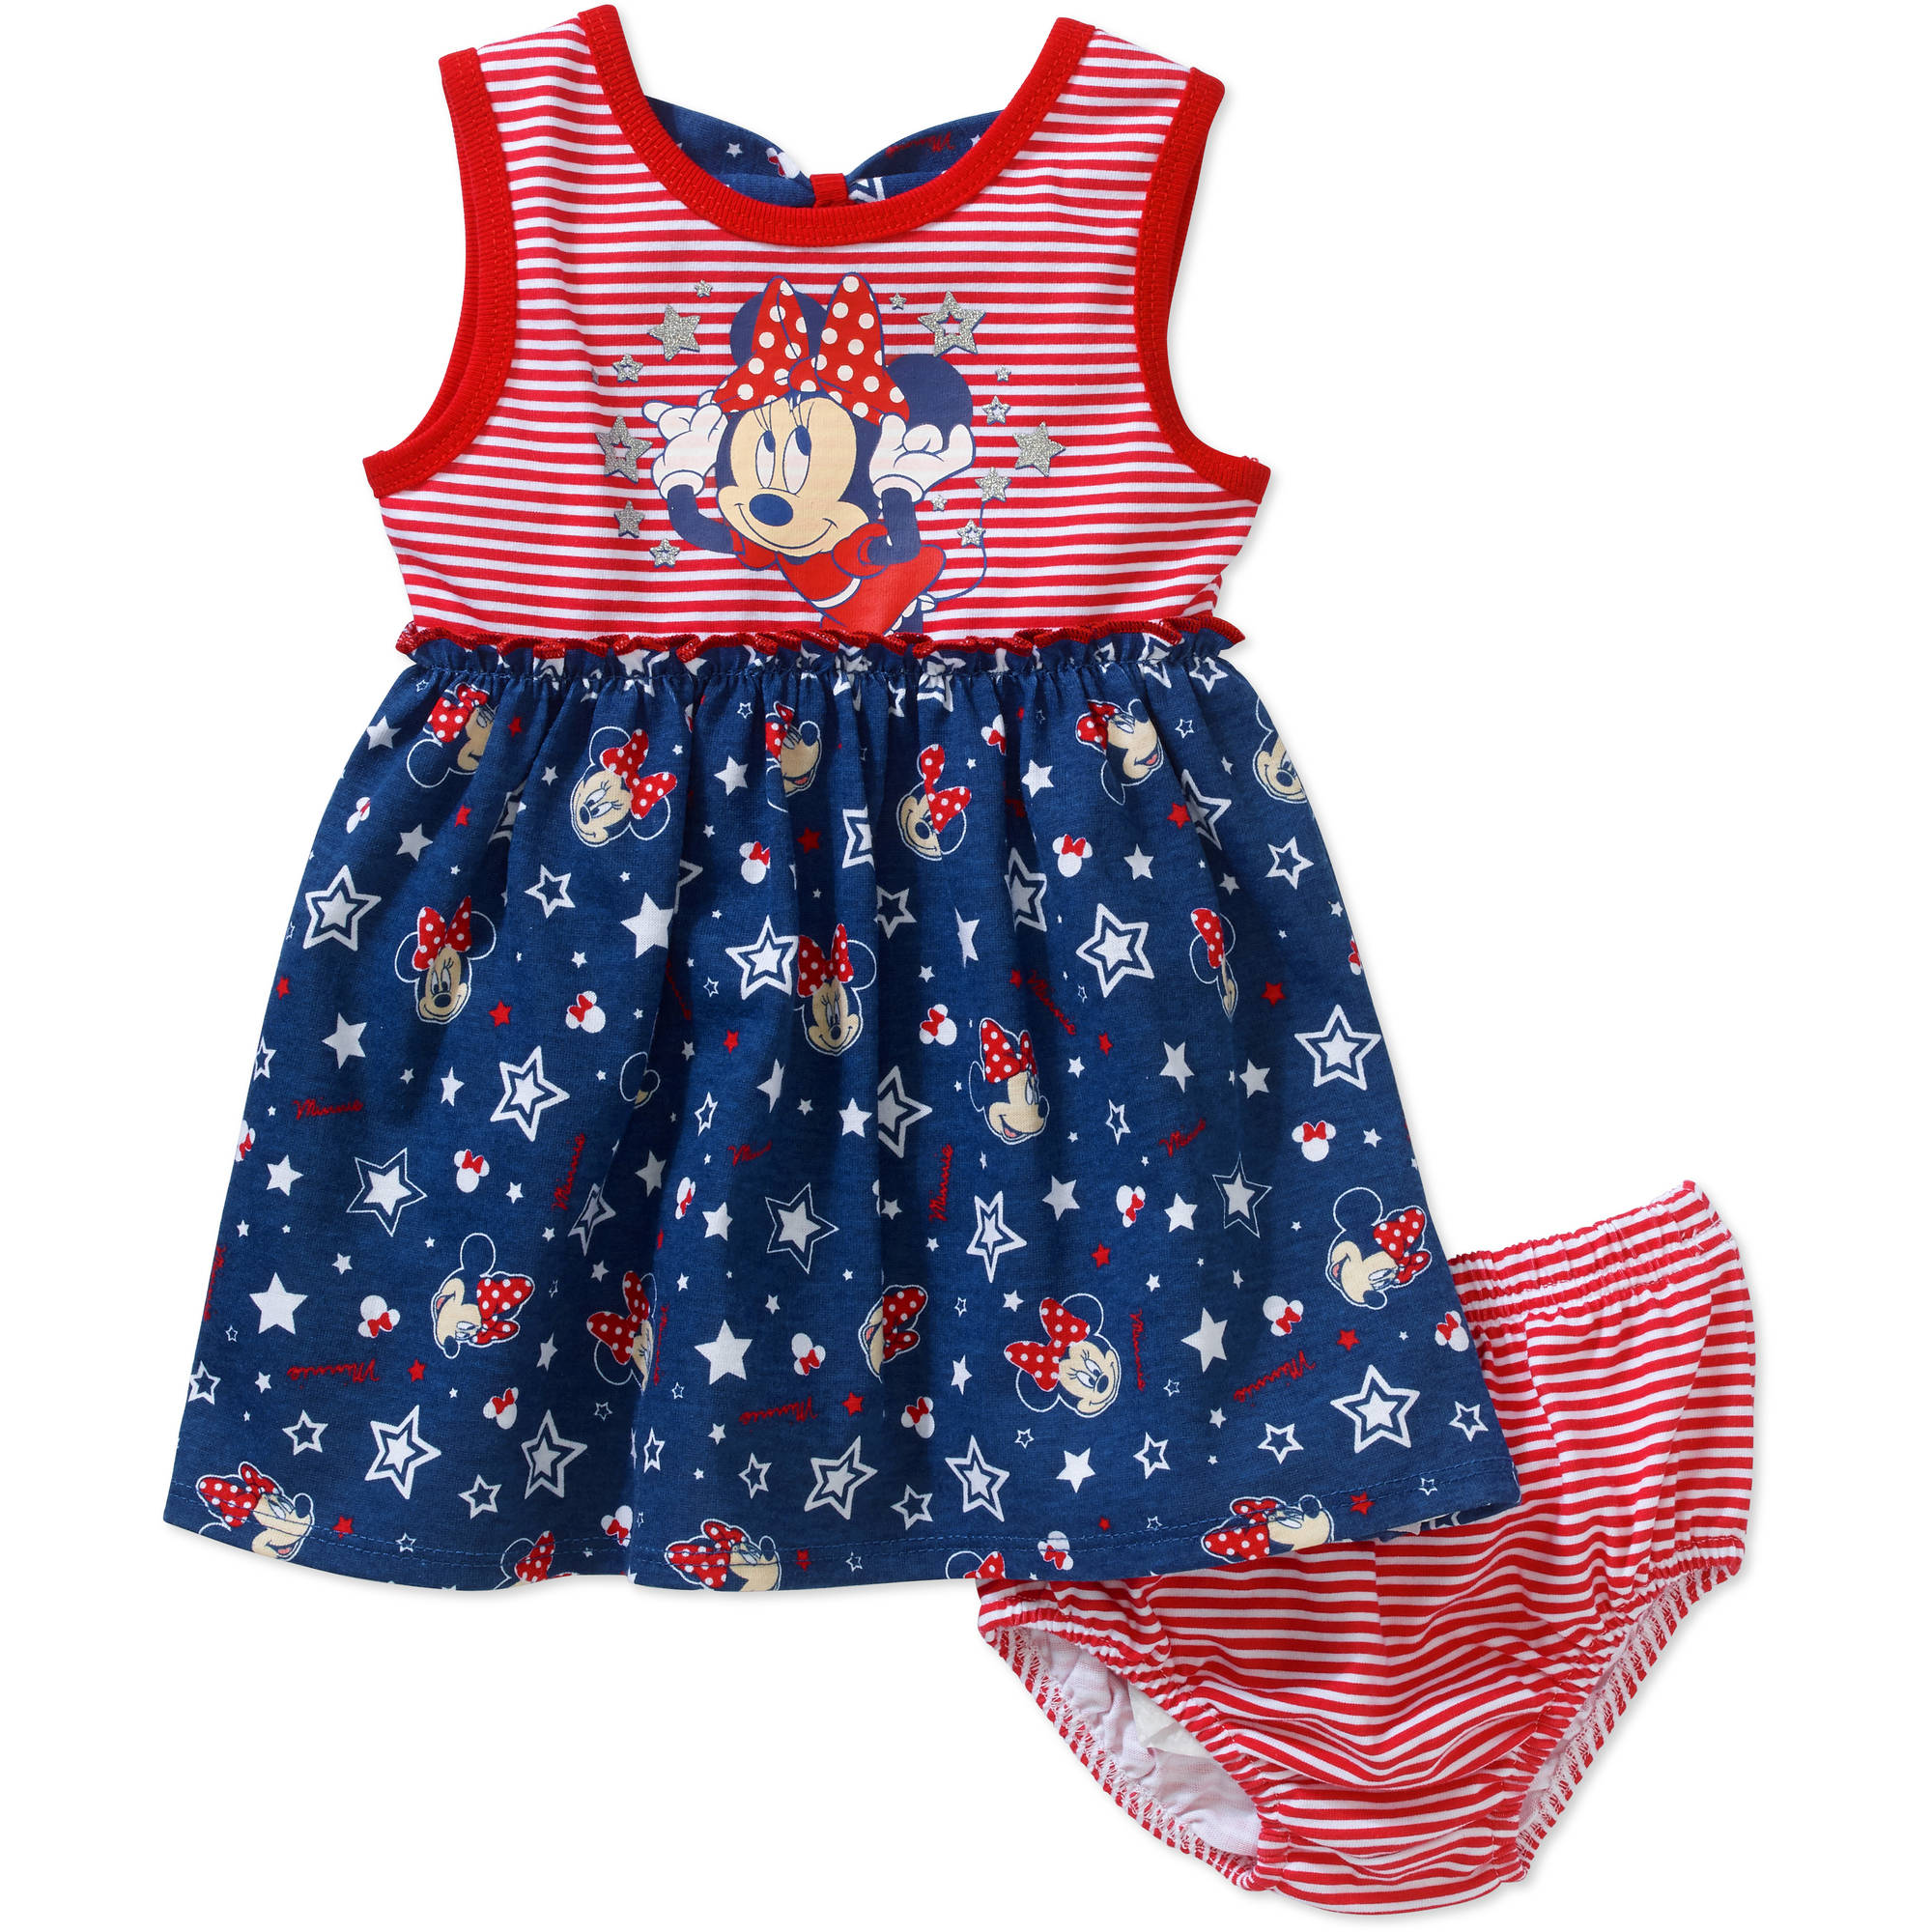 Baby toddler clothing dresses walmart minnie mouse newborn baby girls knit dress with bow back and panty set dhlflorist Gallery